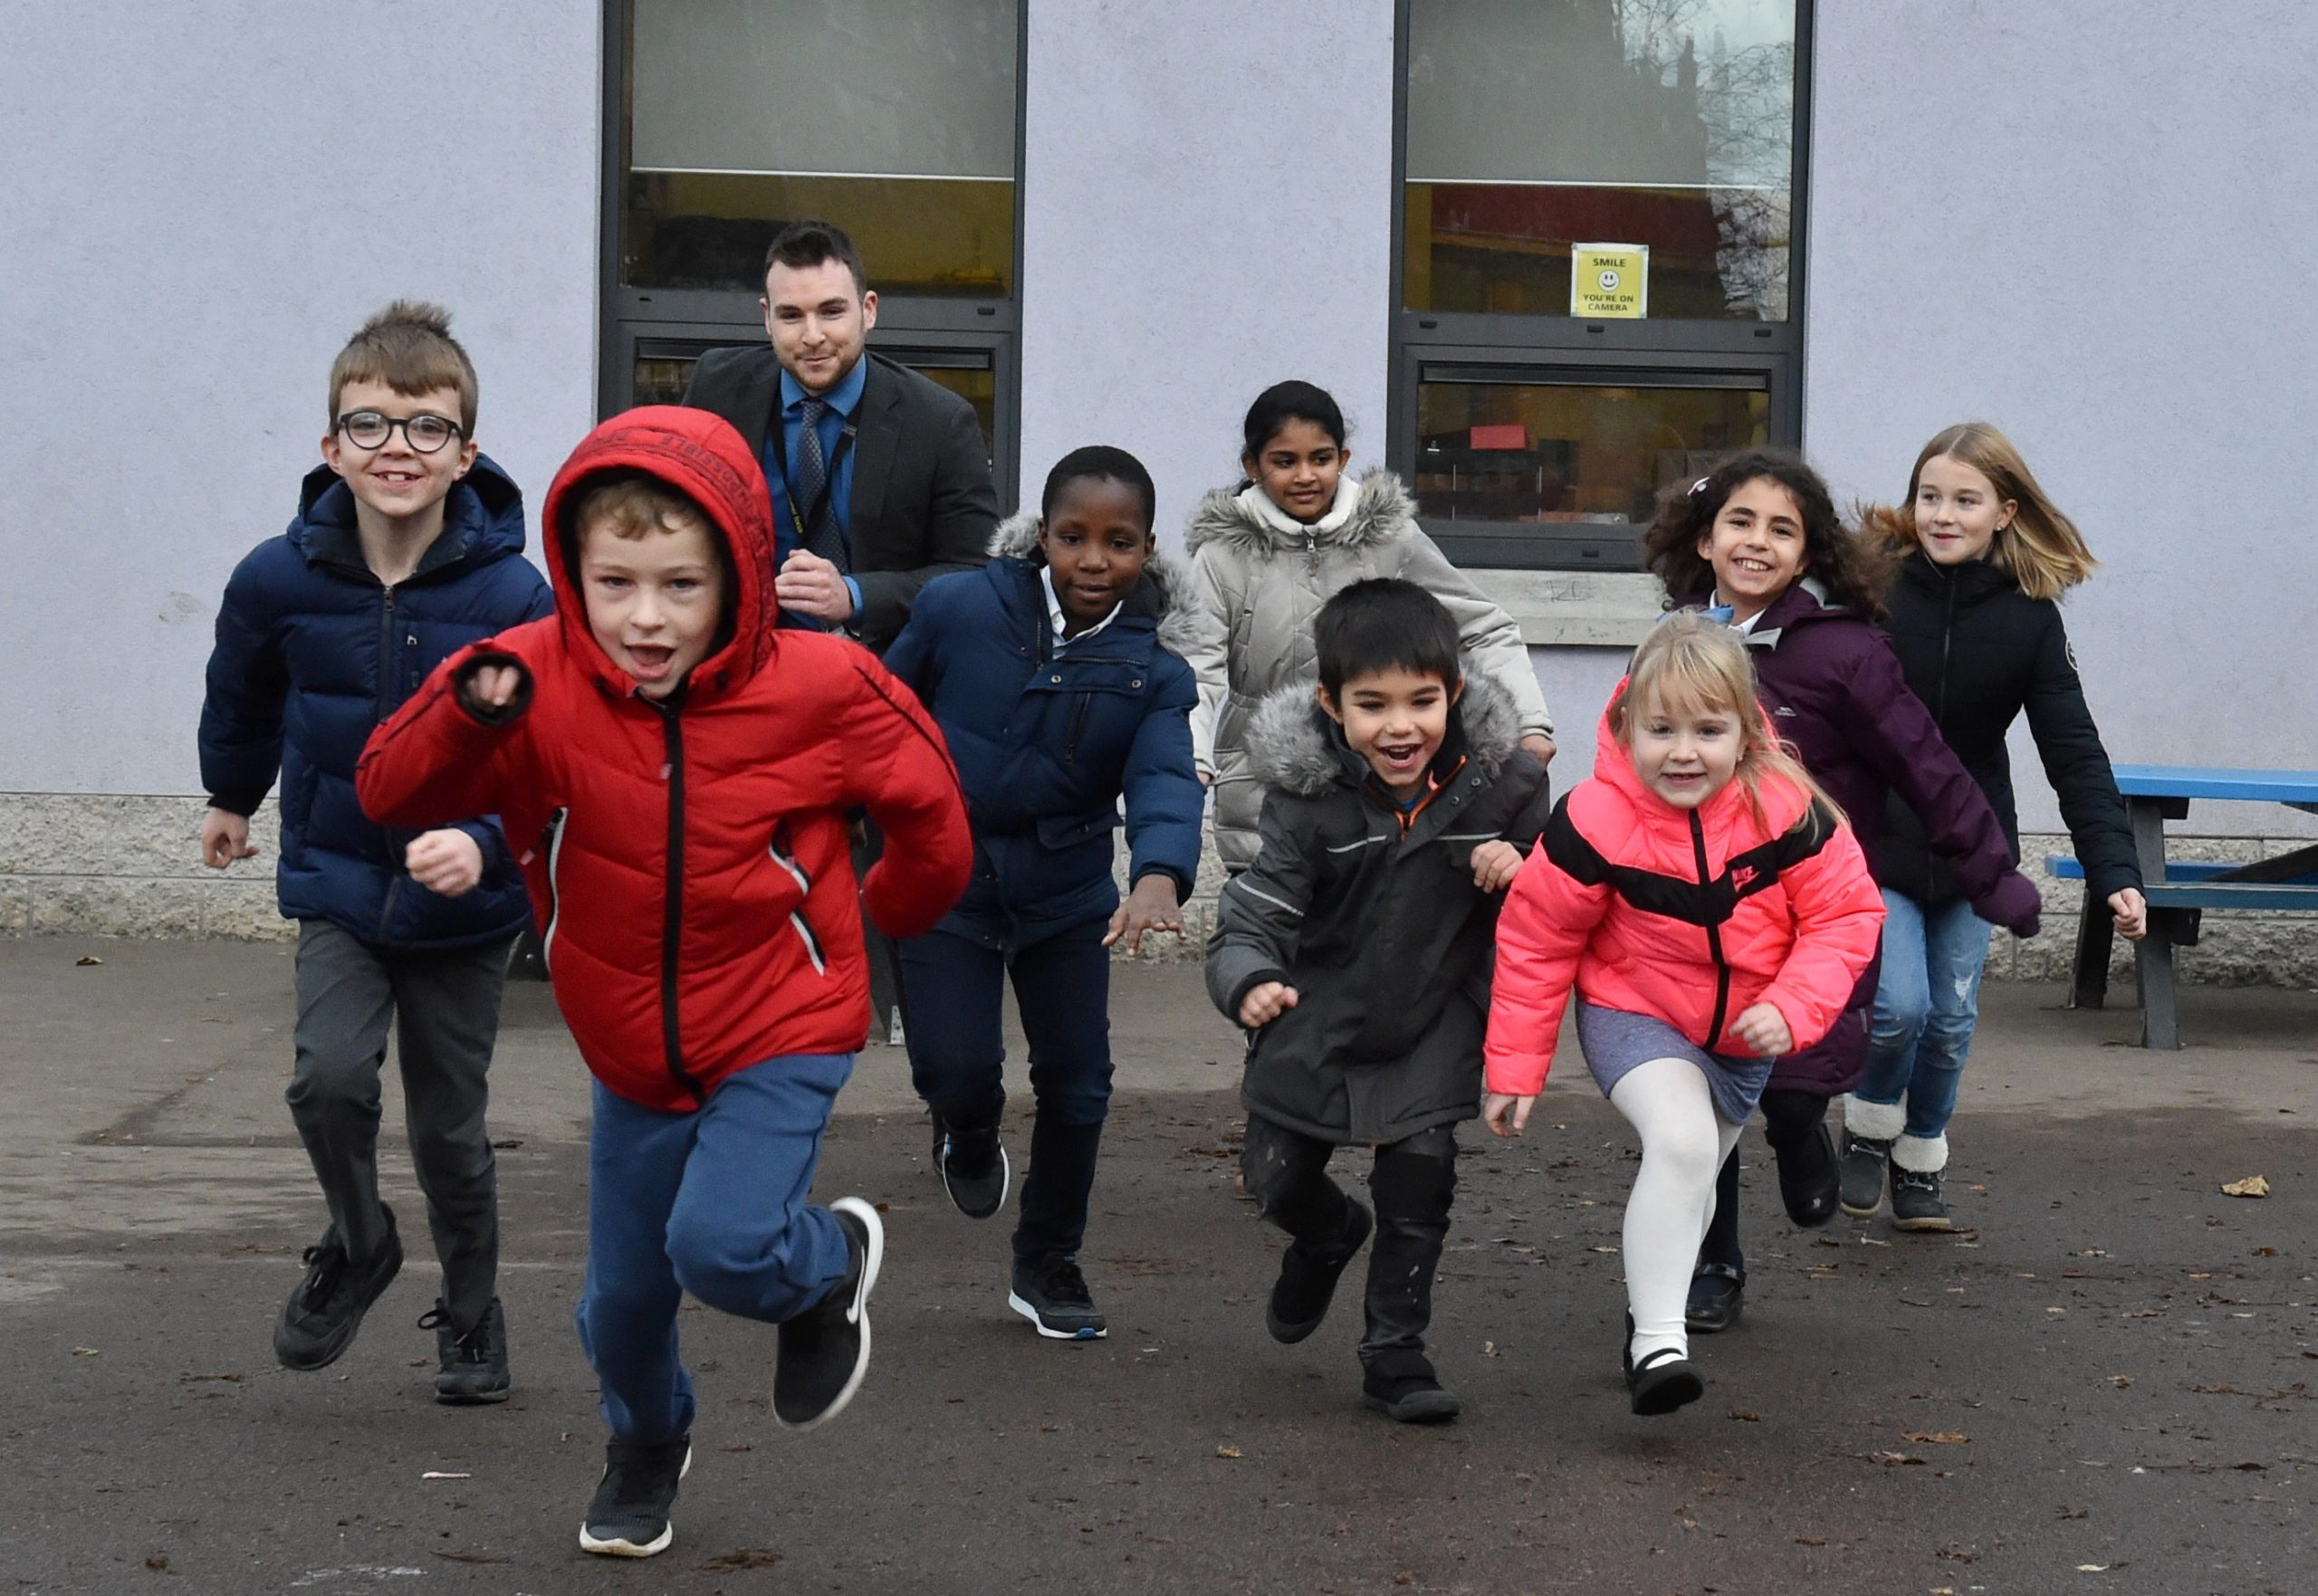 Hanover Street School is one of the most multicultural schools in Aberdeen, with over half of pupils coming from a home where no English is spoken.  Picture by Colin Rennie.